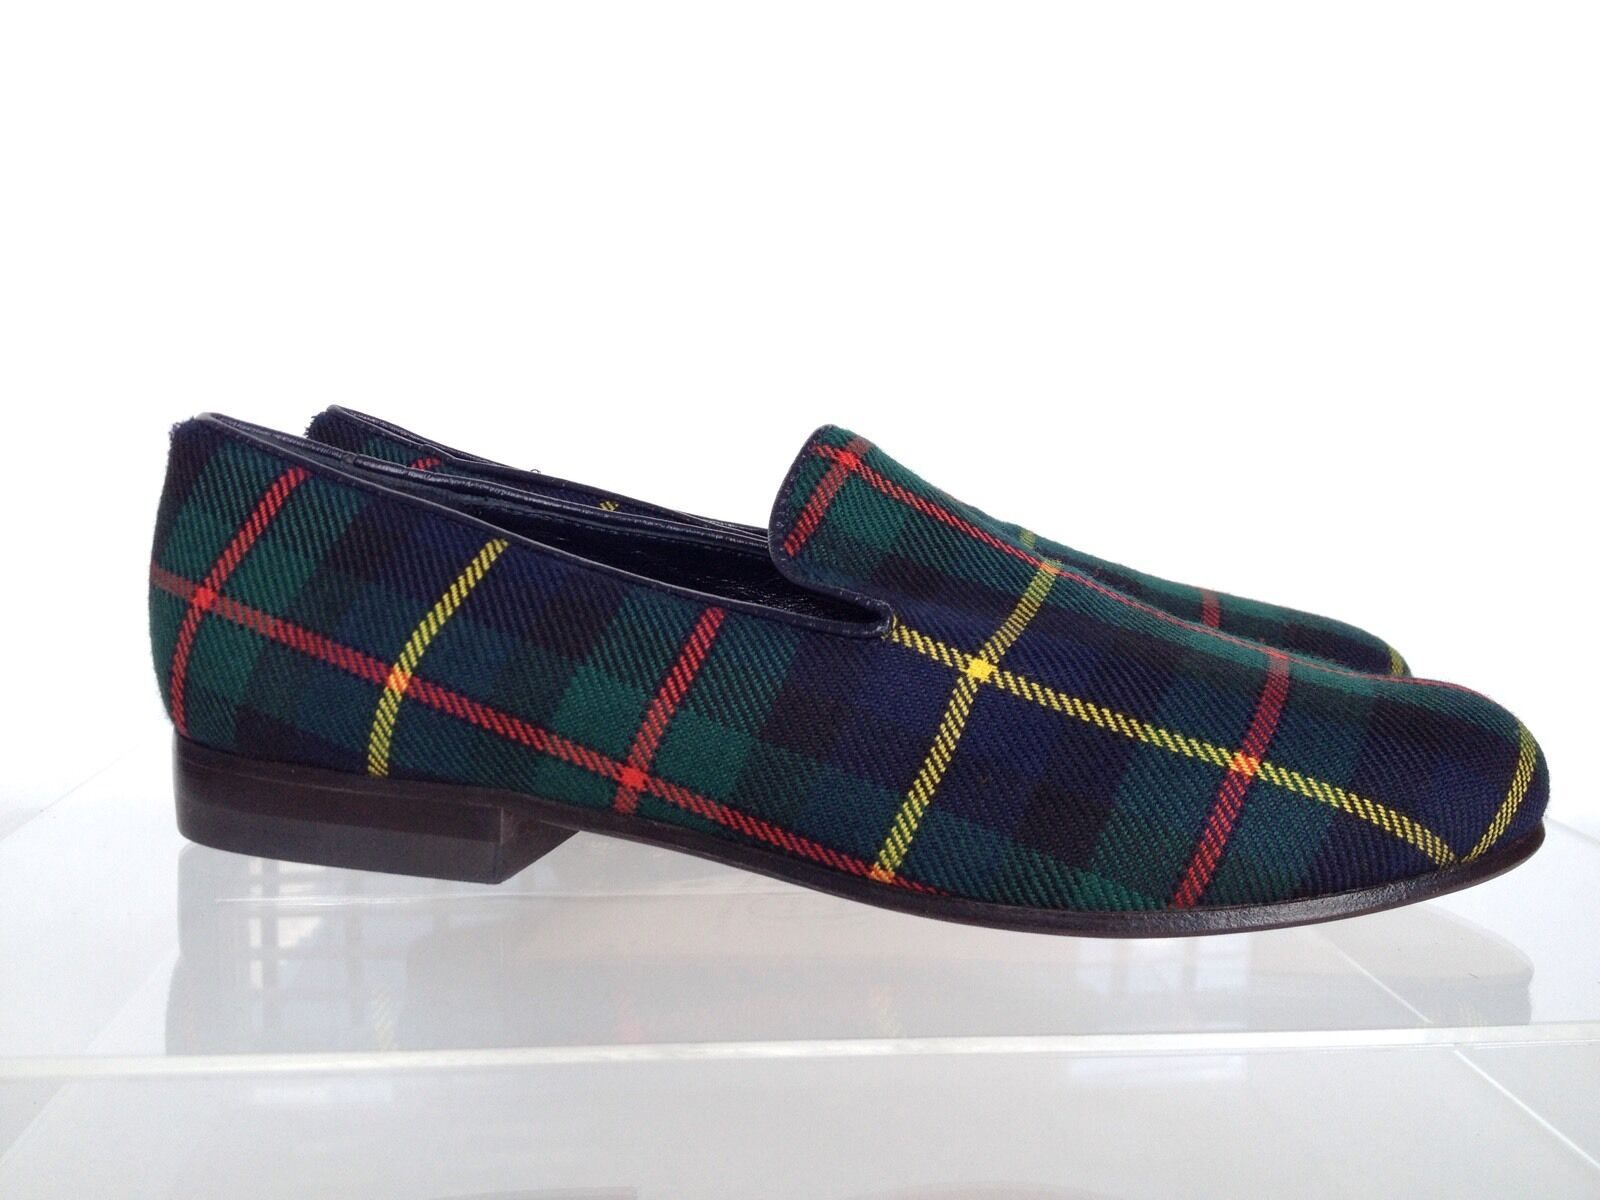 CECILIA BRINGHELI Tartan Wool Loafers Slip on 6.5 US 36.5 EU Green Blue $465